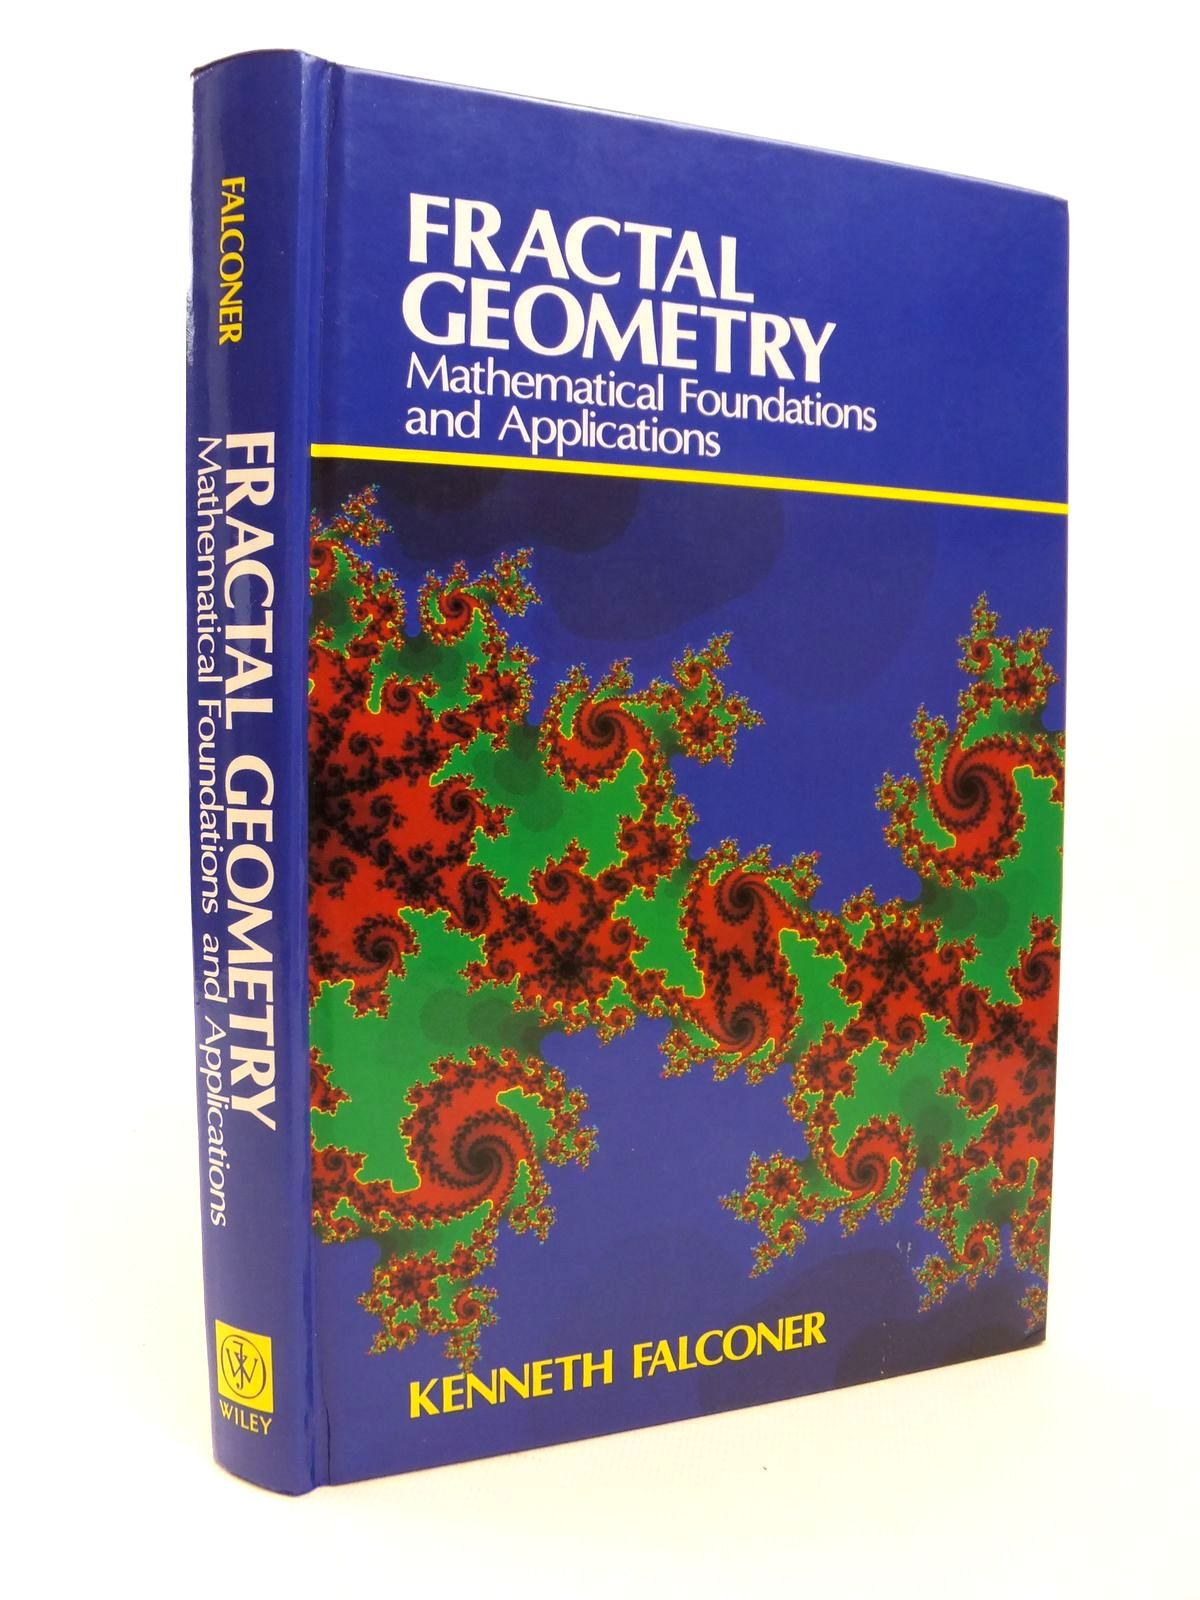 Photo of FRACTAL GEOMETRY: MATHEMATICAL FOUNDATIONS AND APPLICATIONS written by Falconer, Kenneth published by John Wiley & Sons (STOCK CODE: 1812436)  for sale by Stella & Rose's Books